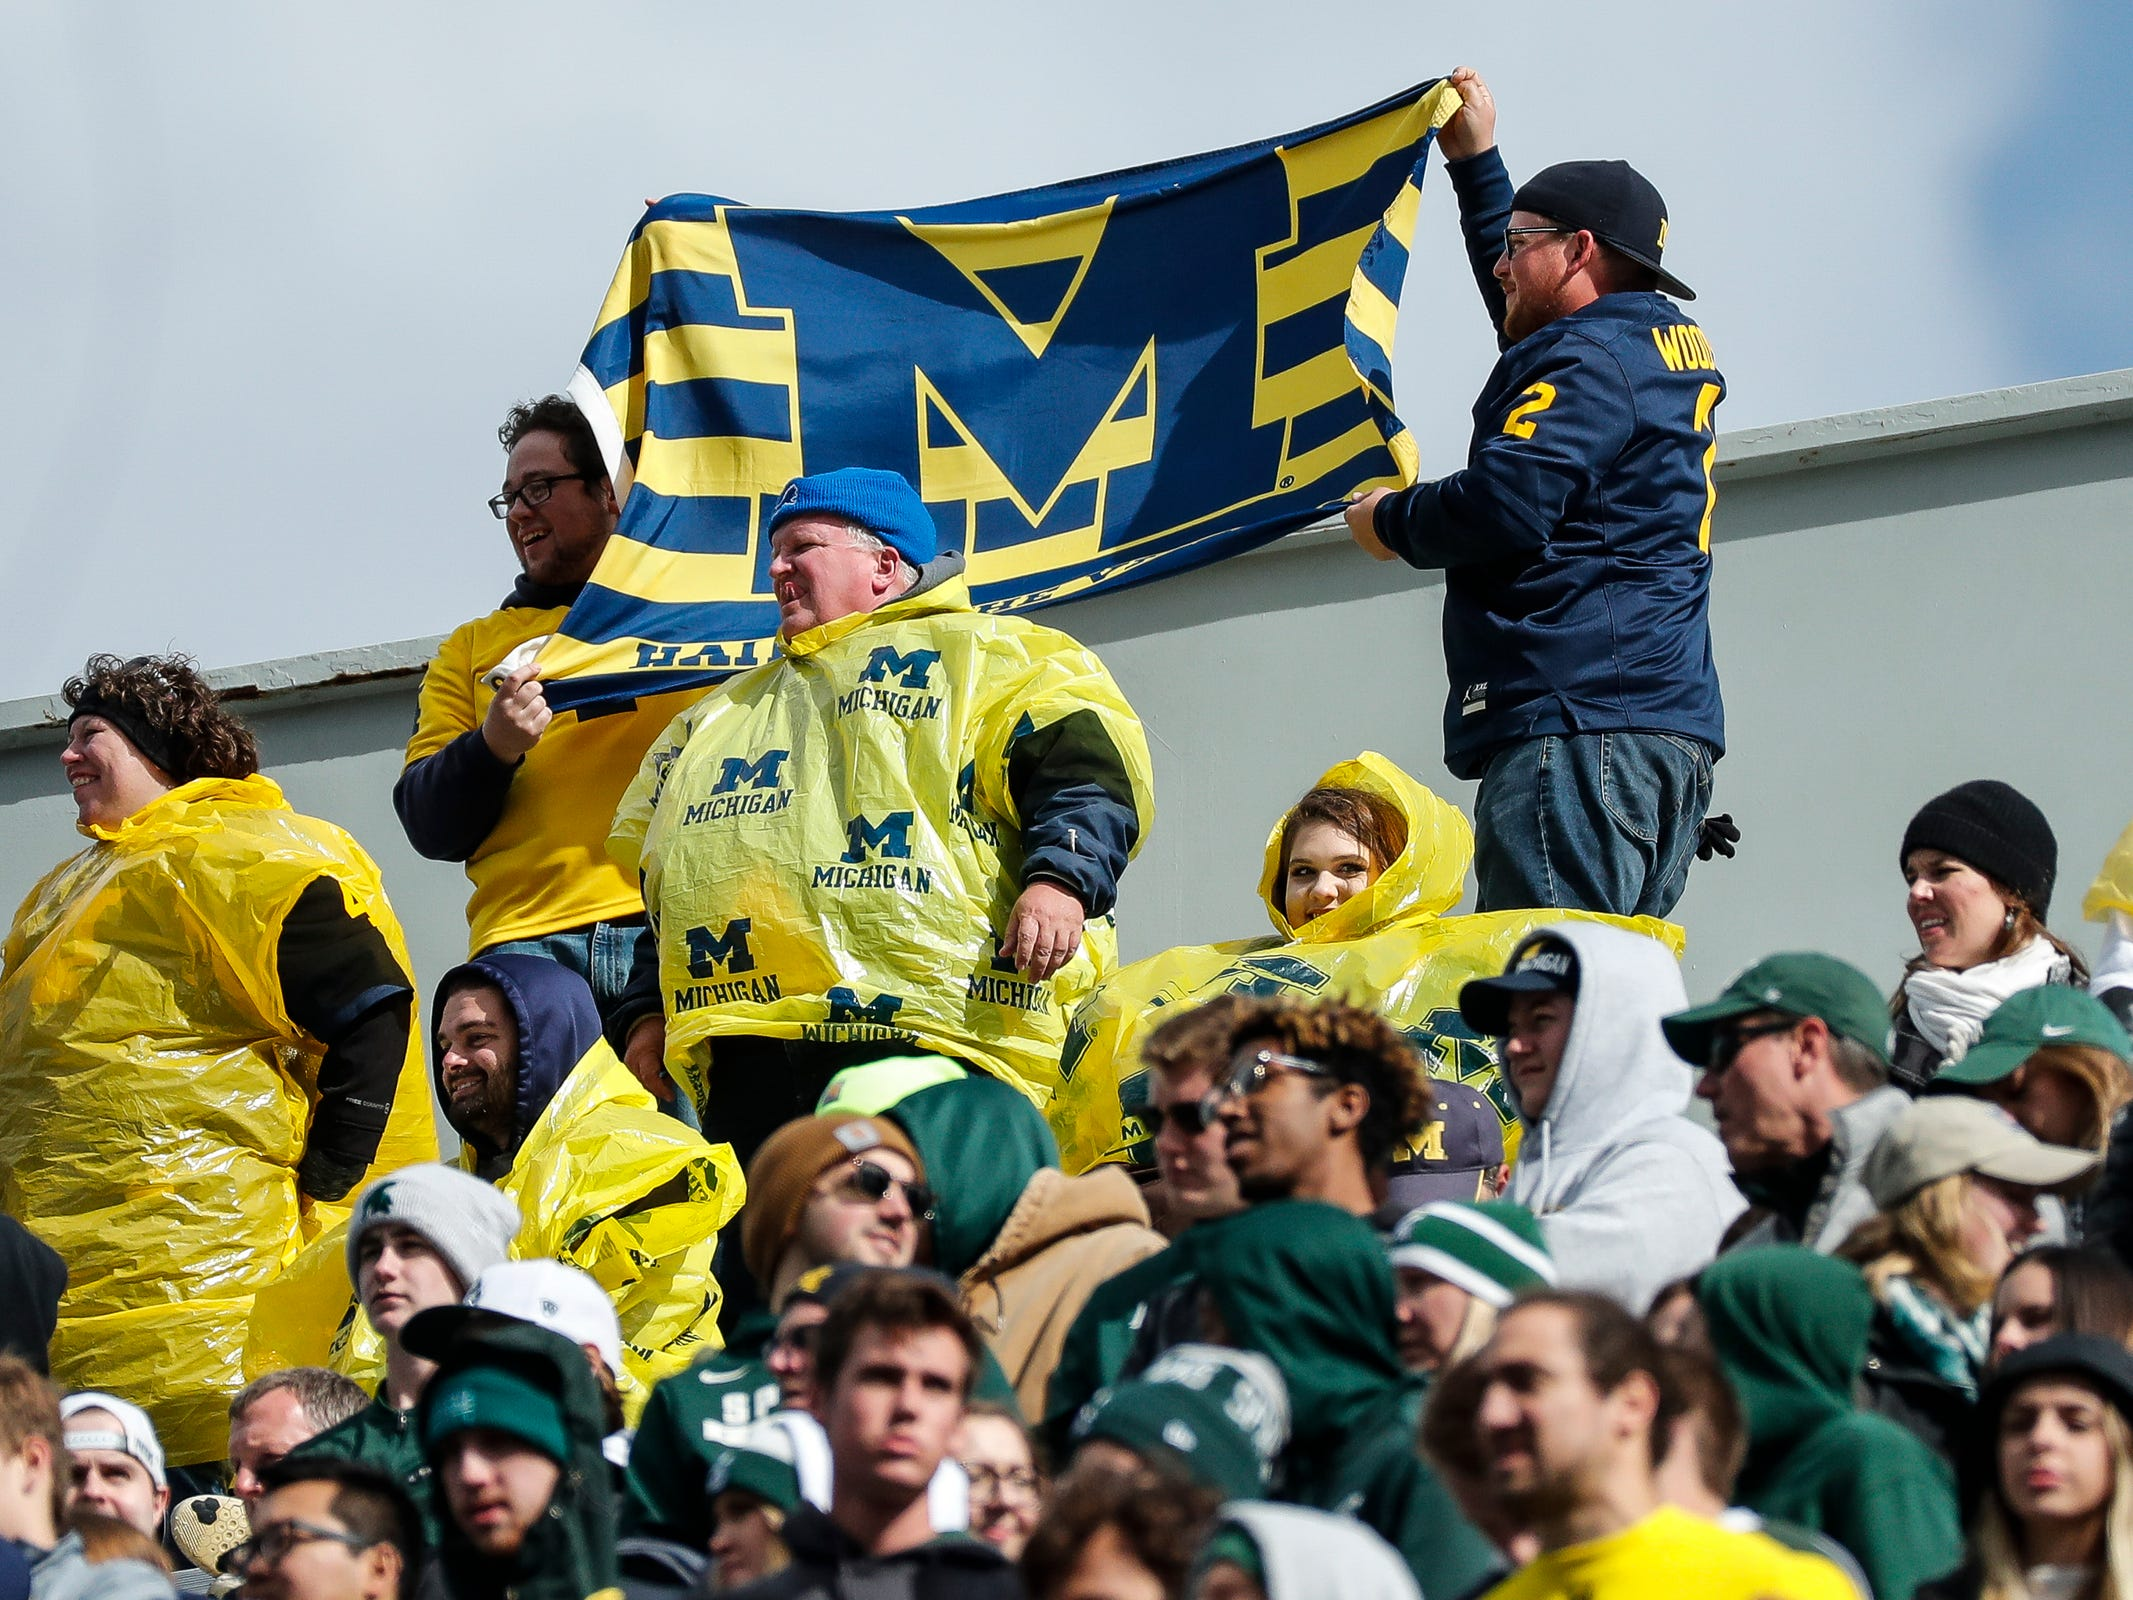 Michigan fans wave a flag during the first half at Spartan Stadium in East Lansing, Saturday, Oct. 20, 2018.